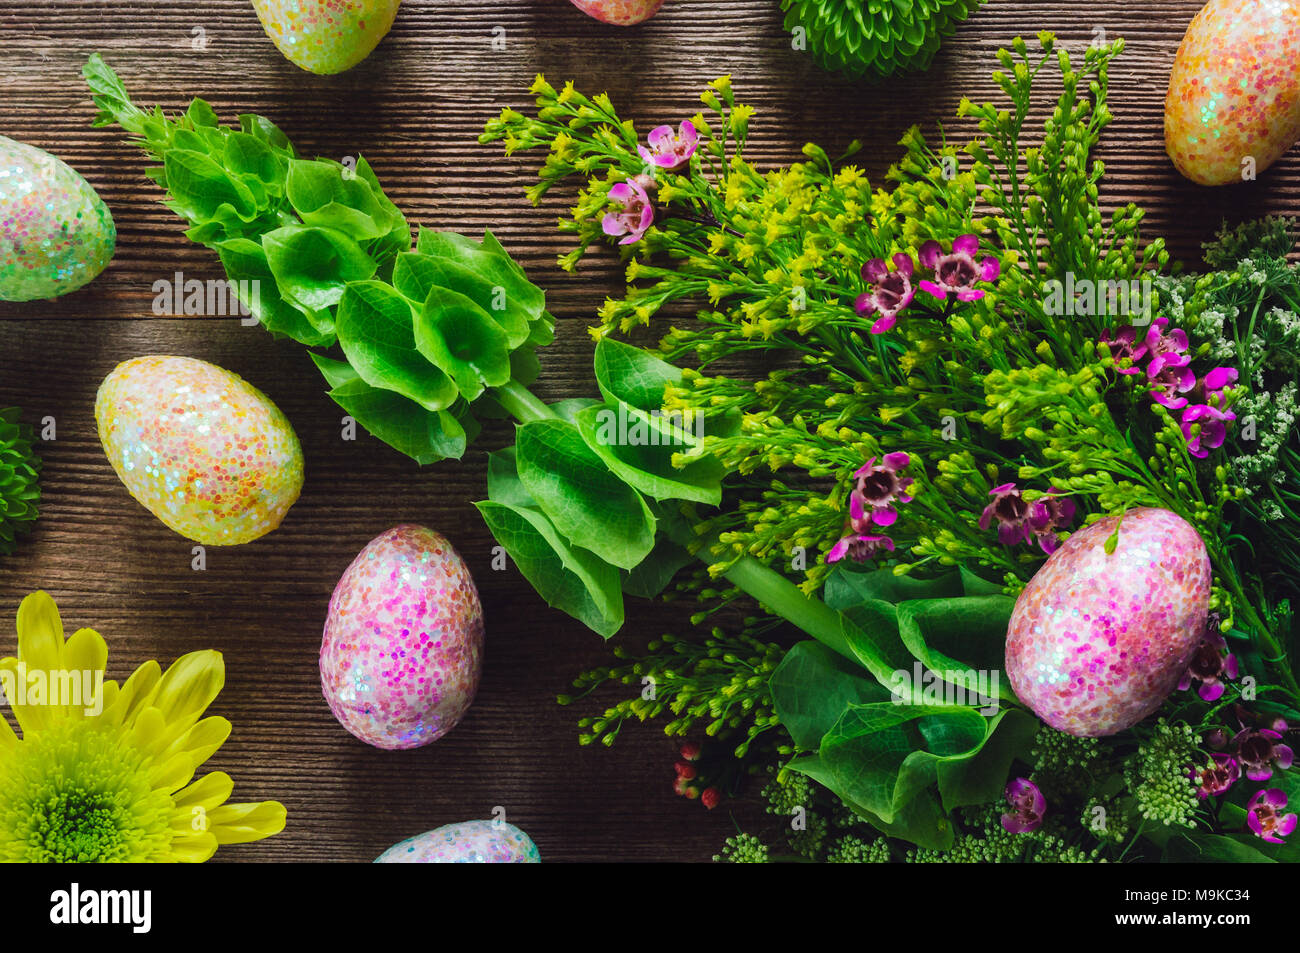 Flowering Plants with Decorated Eggs on Wood Table - Stock Image